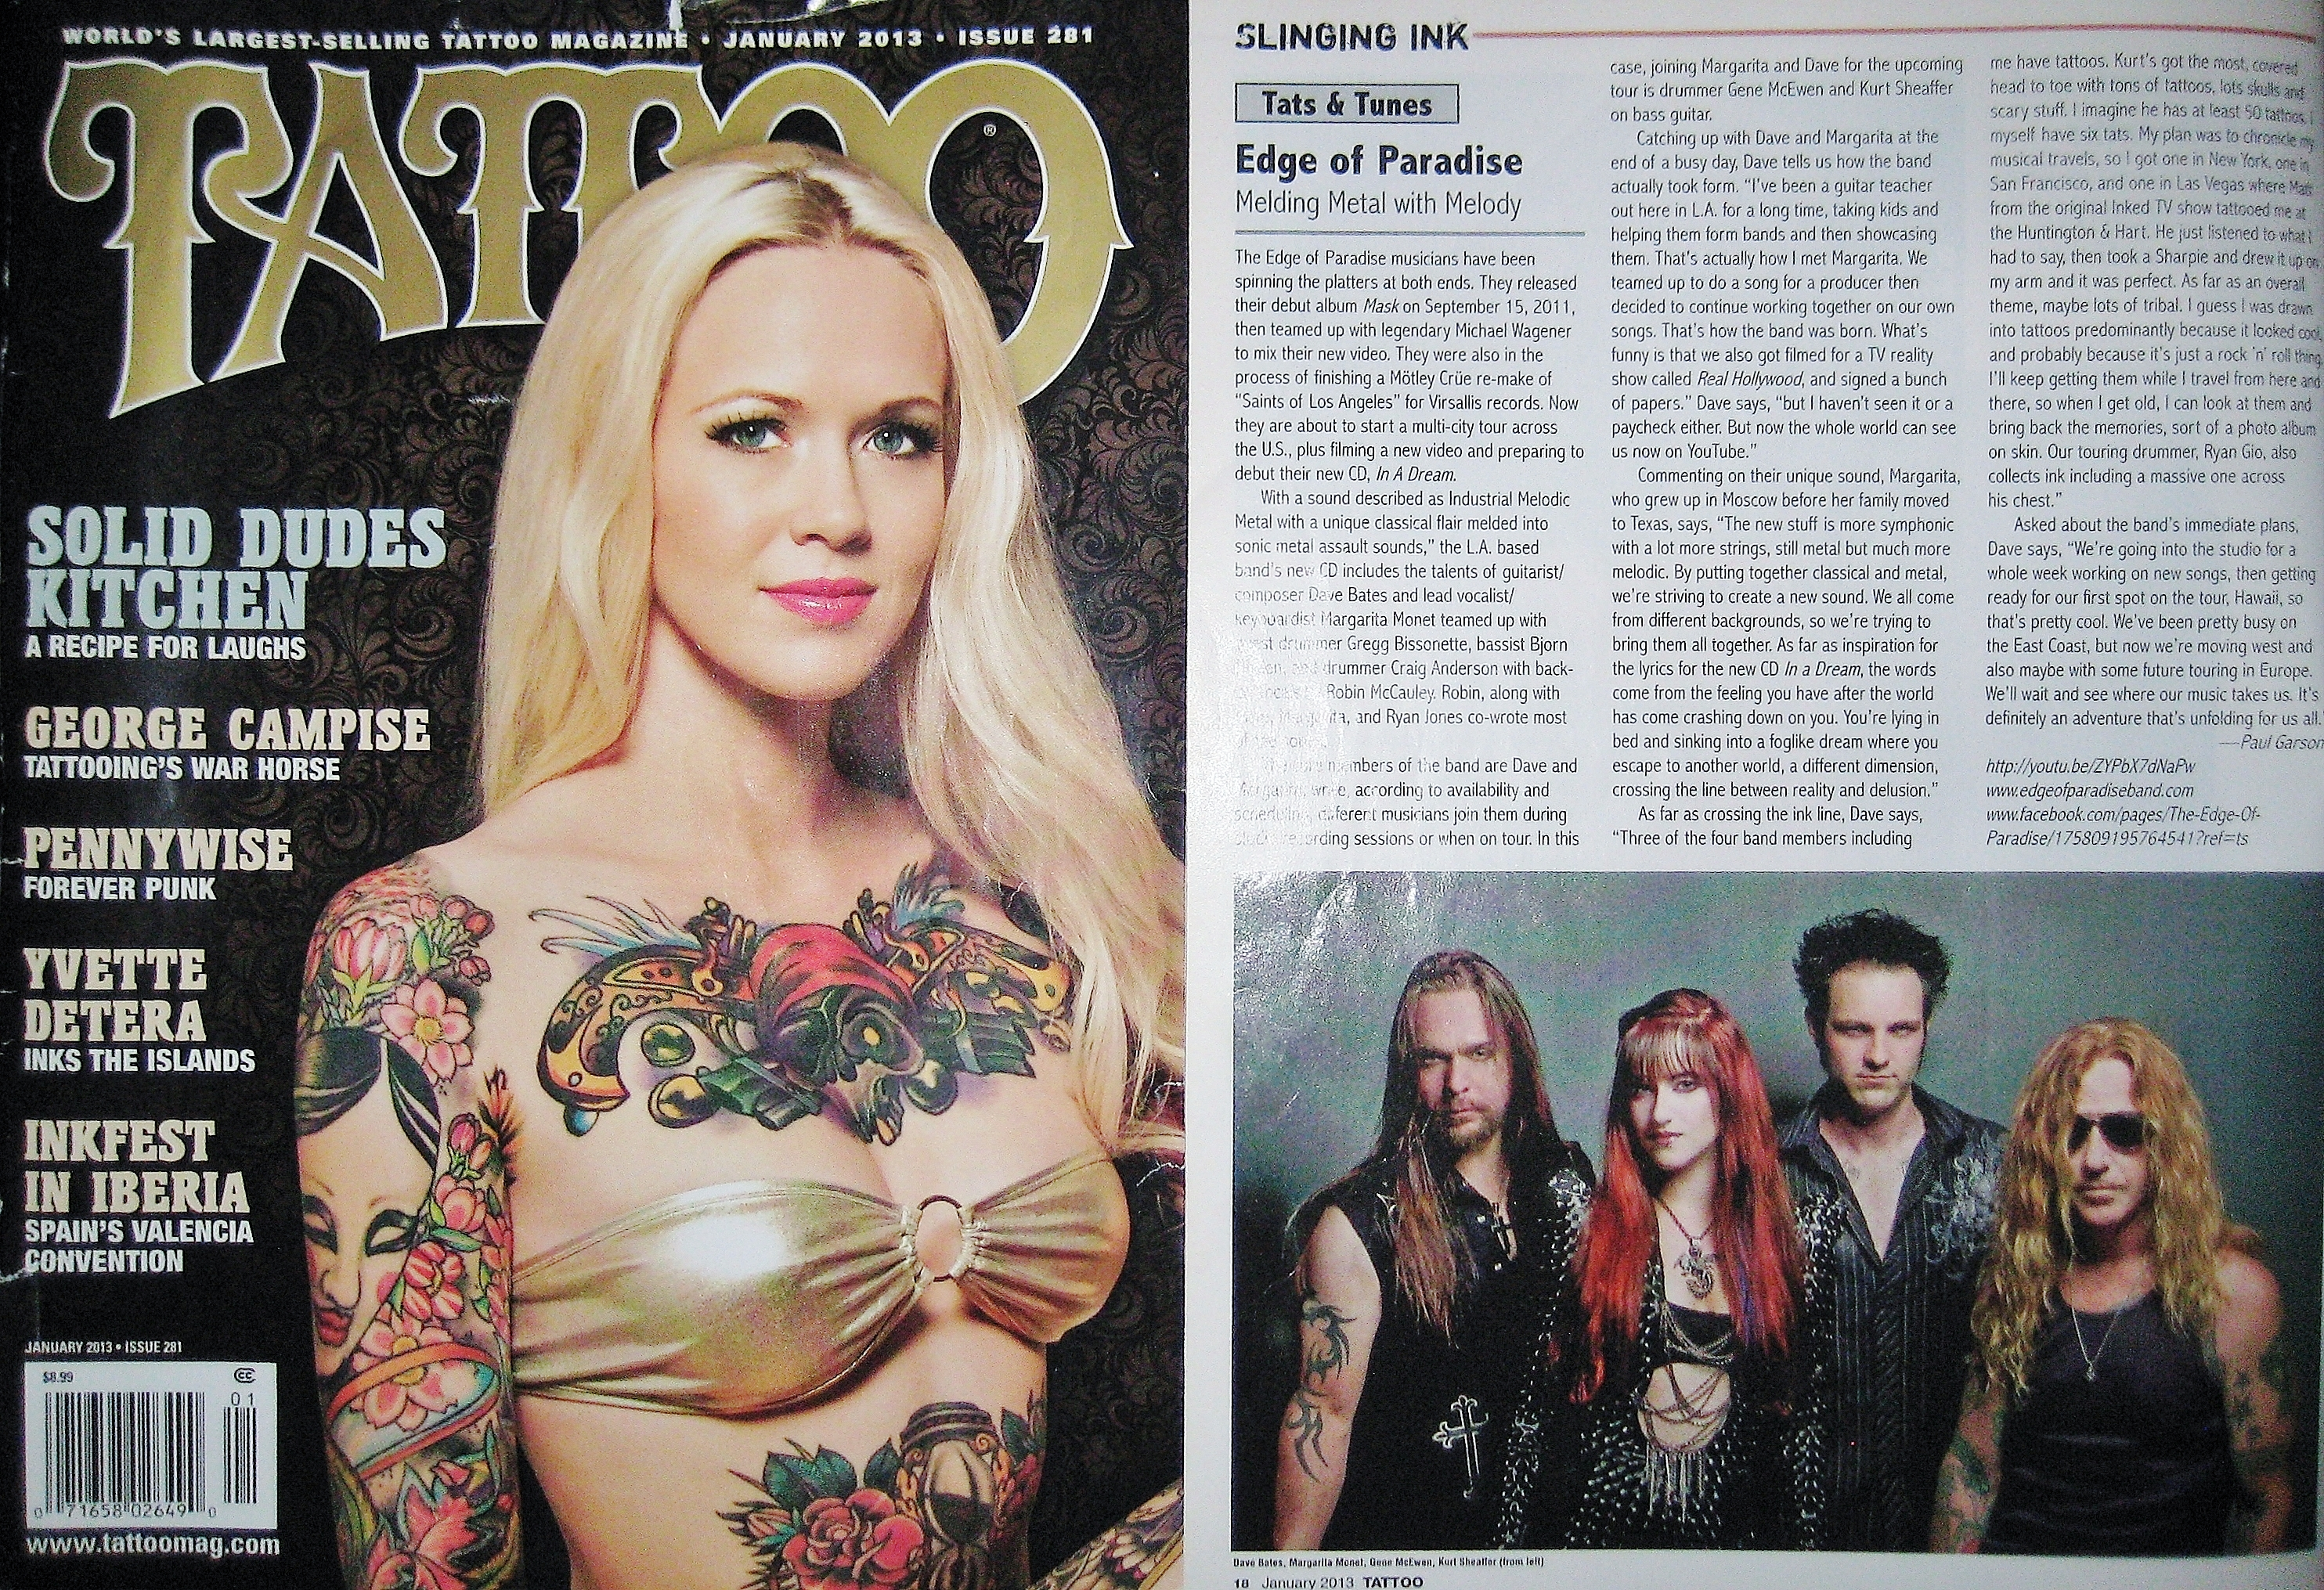 January 2013 Tattoo Magazine - EDGE OF PARADISE